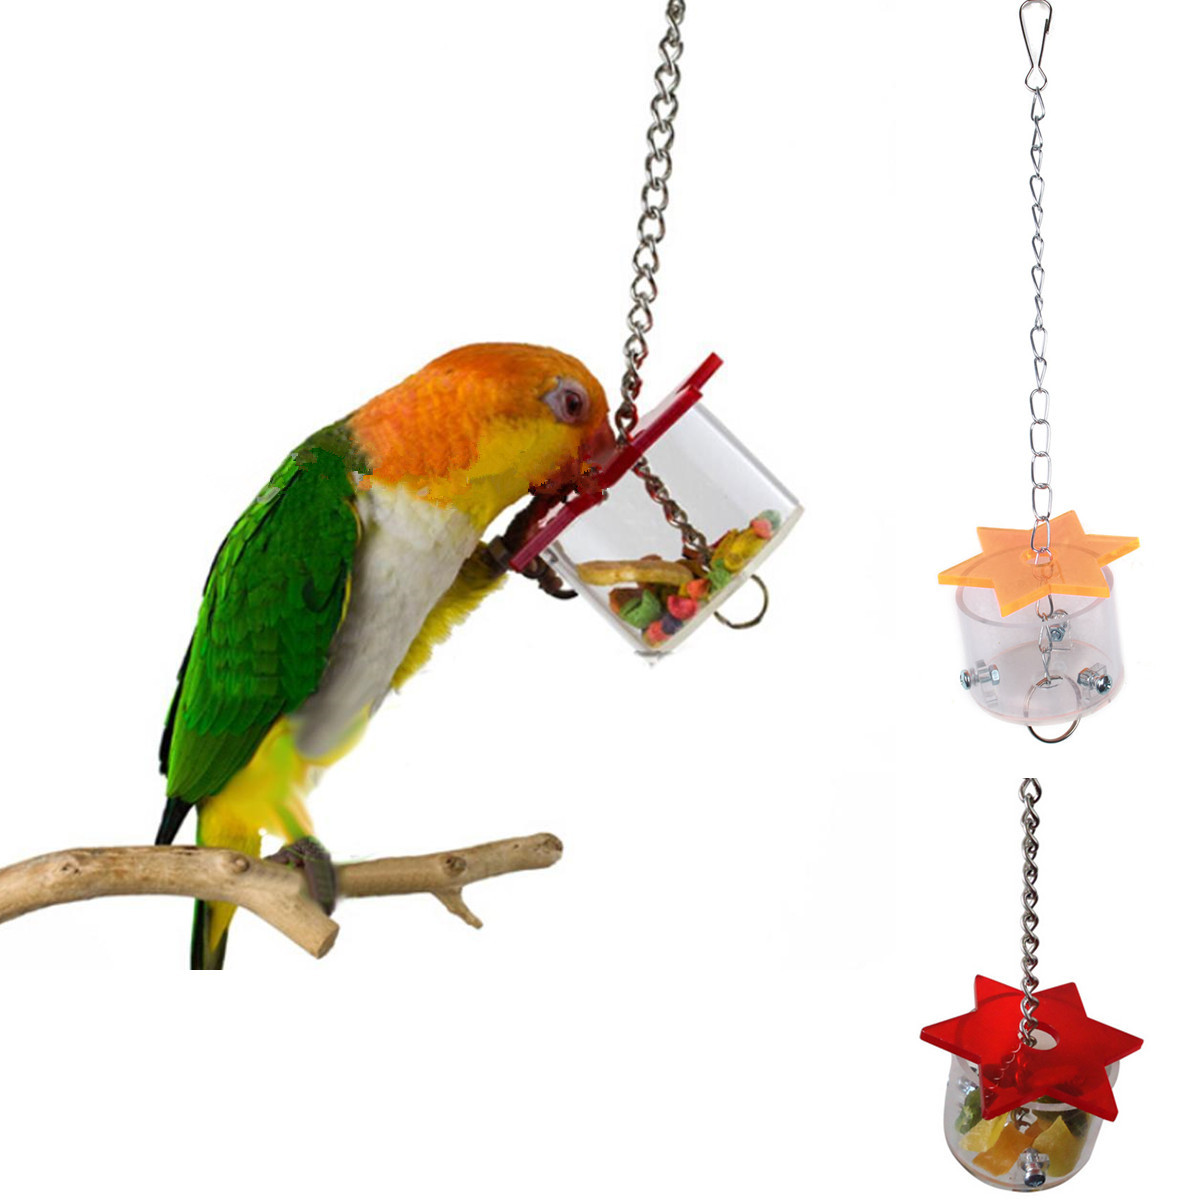 Bird Feeding Box Toy Parrot Pet Hex Star Acrylic Foraging Feeder Birds Chew On Hanging Cage Swing Toys Random Color(China (Mainland))